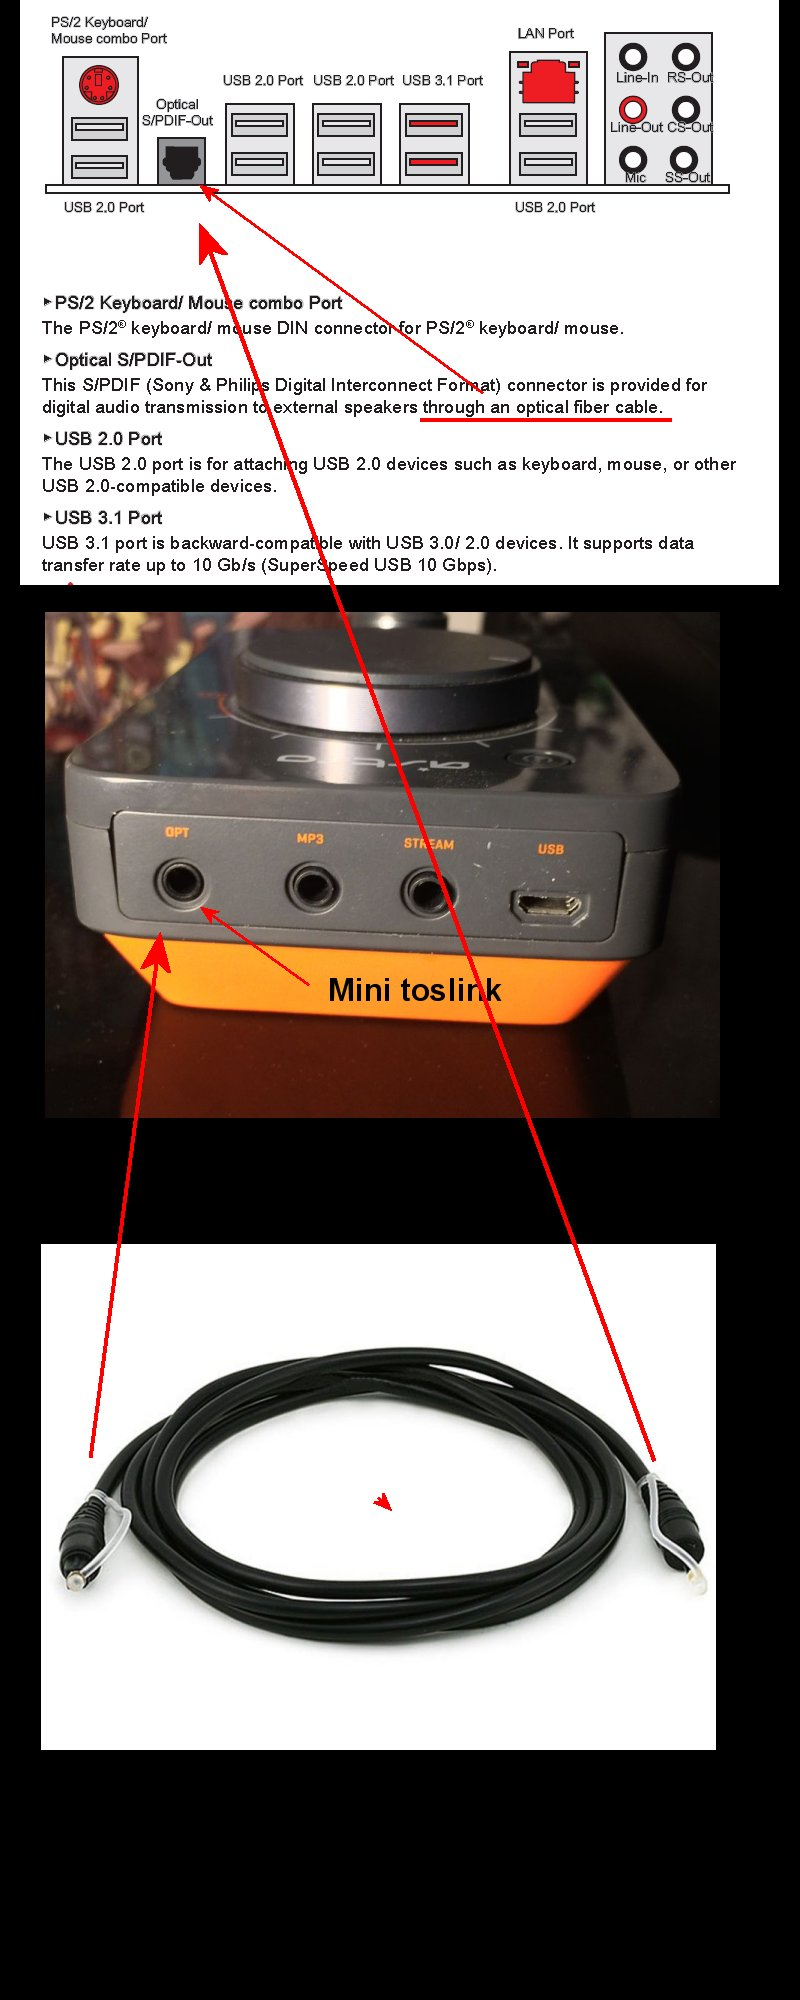 How to enable SPDIF out on MSI 990FXA?